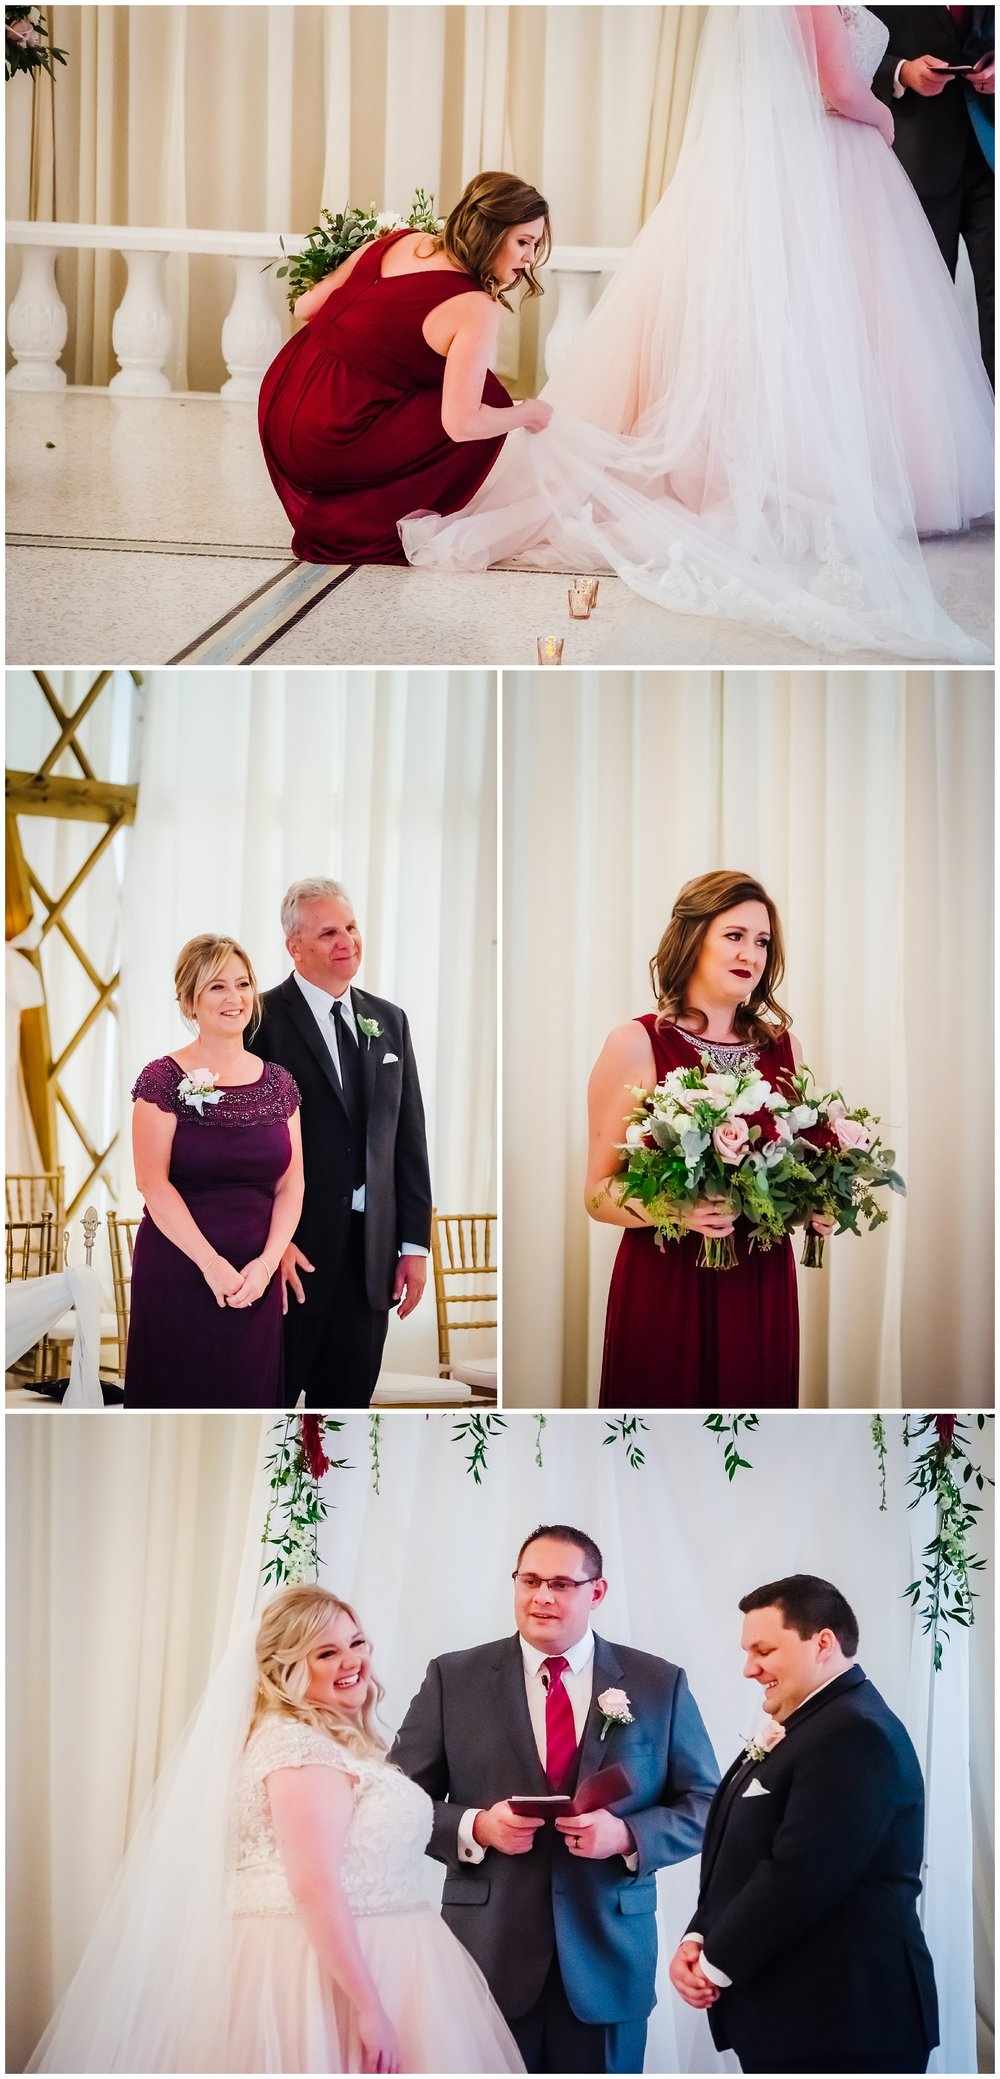 tampa-wedding-photographer-kapok-special-events-center-hayley-paige-gress-blush-gold-disney_0035.jpg